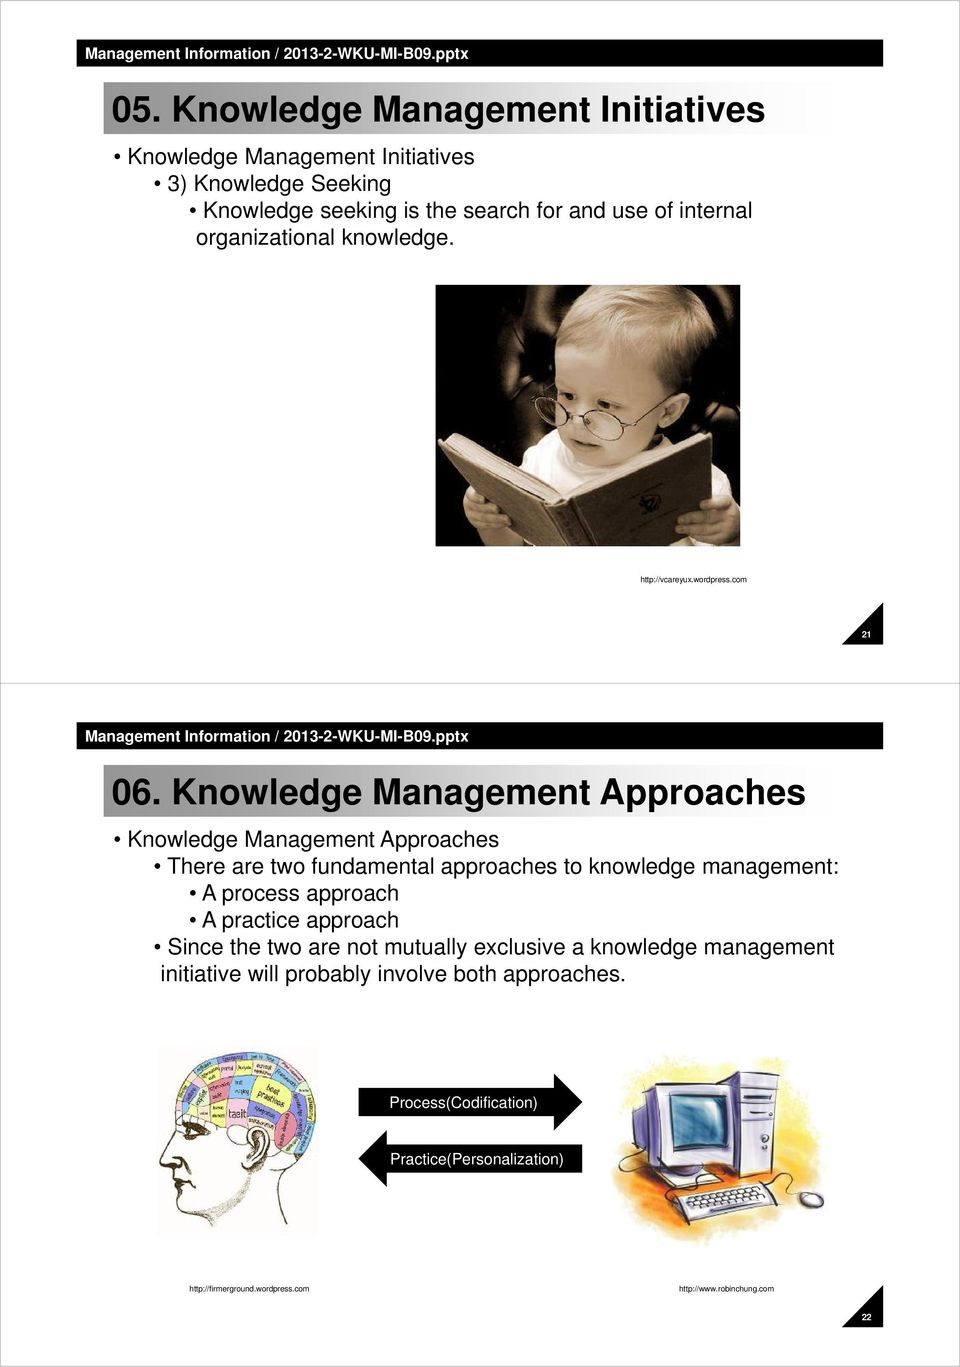 Knowledge Management Approaches Knowledge Management Approaches There are two fundamental approaches to knowledge management: A process approach A